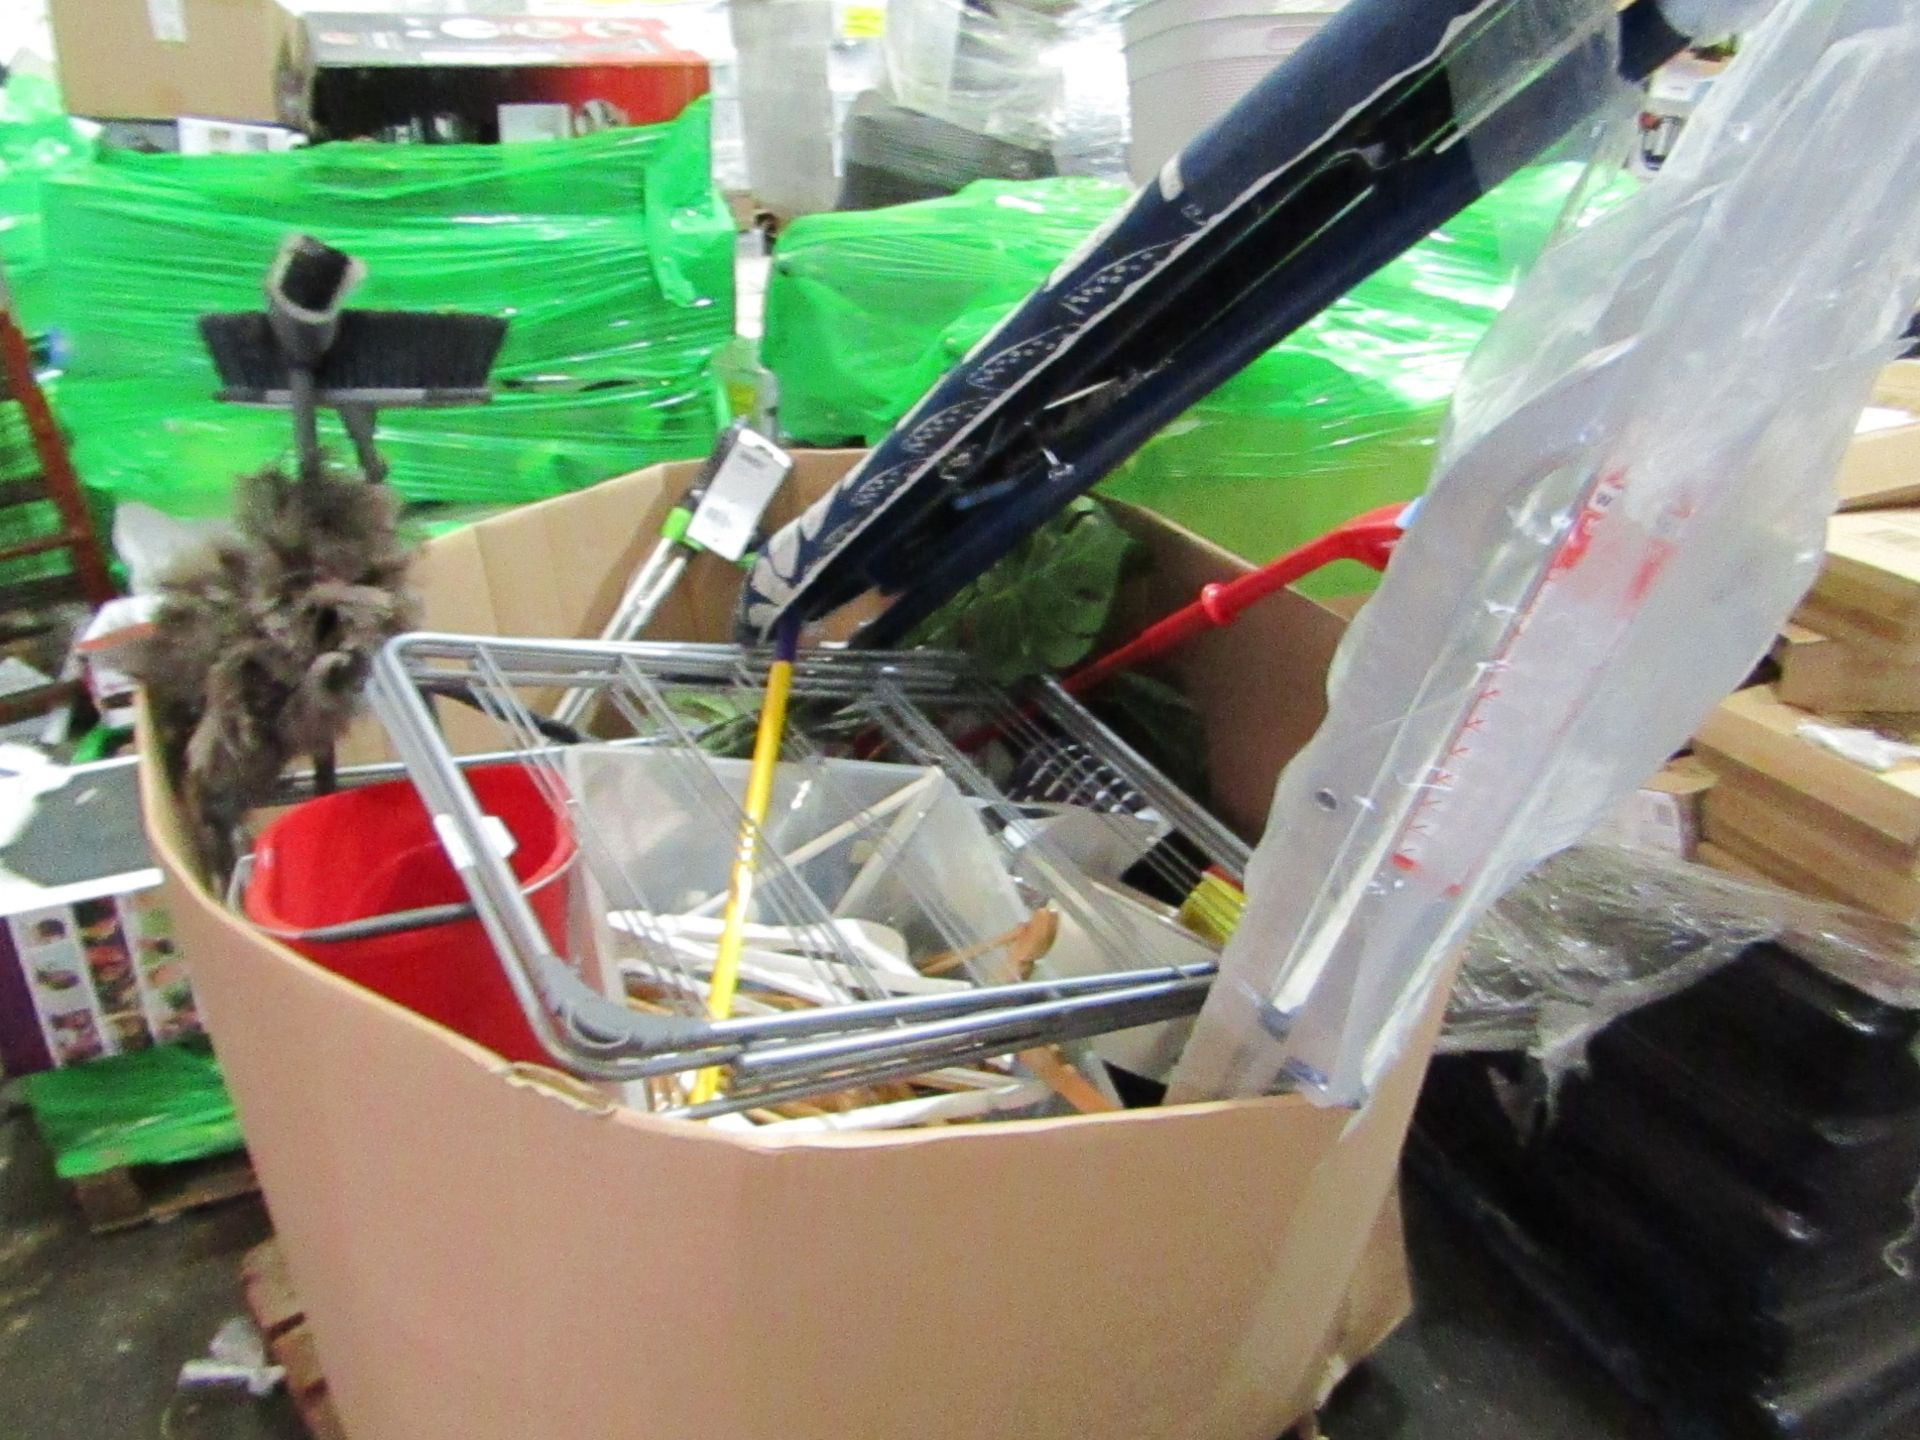 Lot 1 - Pallet of approx 30 Various Electrical and Non Electrical Raw customer returns from a large high